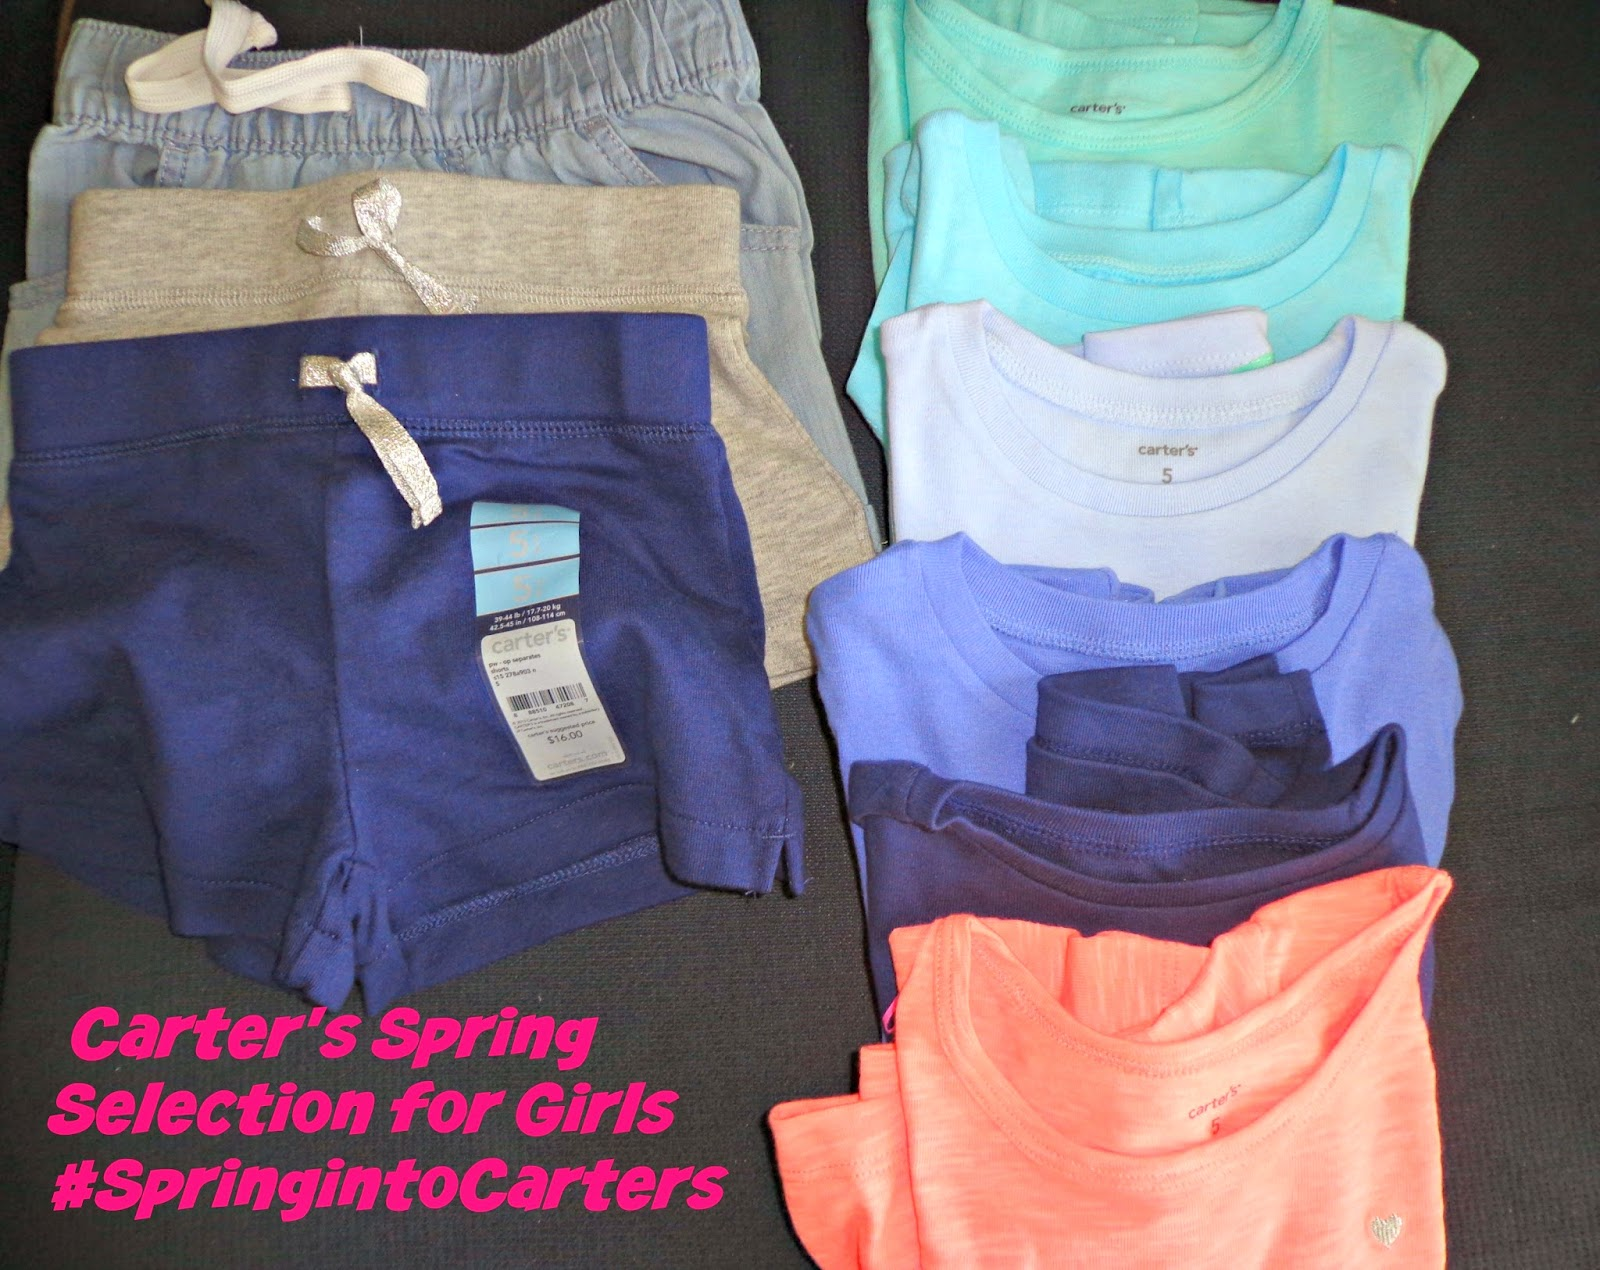 Carter's Spring Selection for Girls